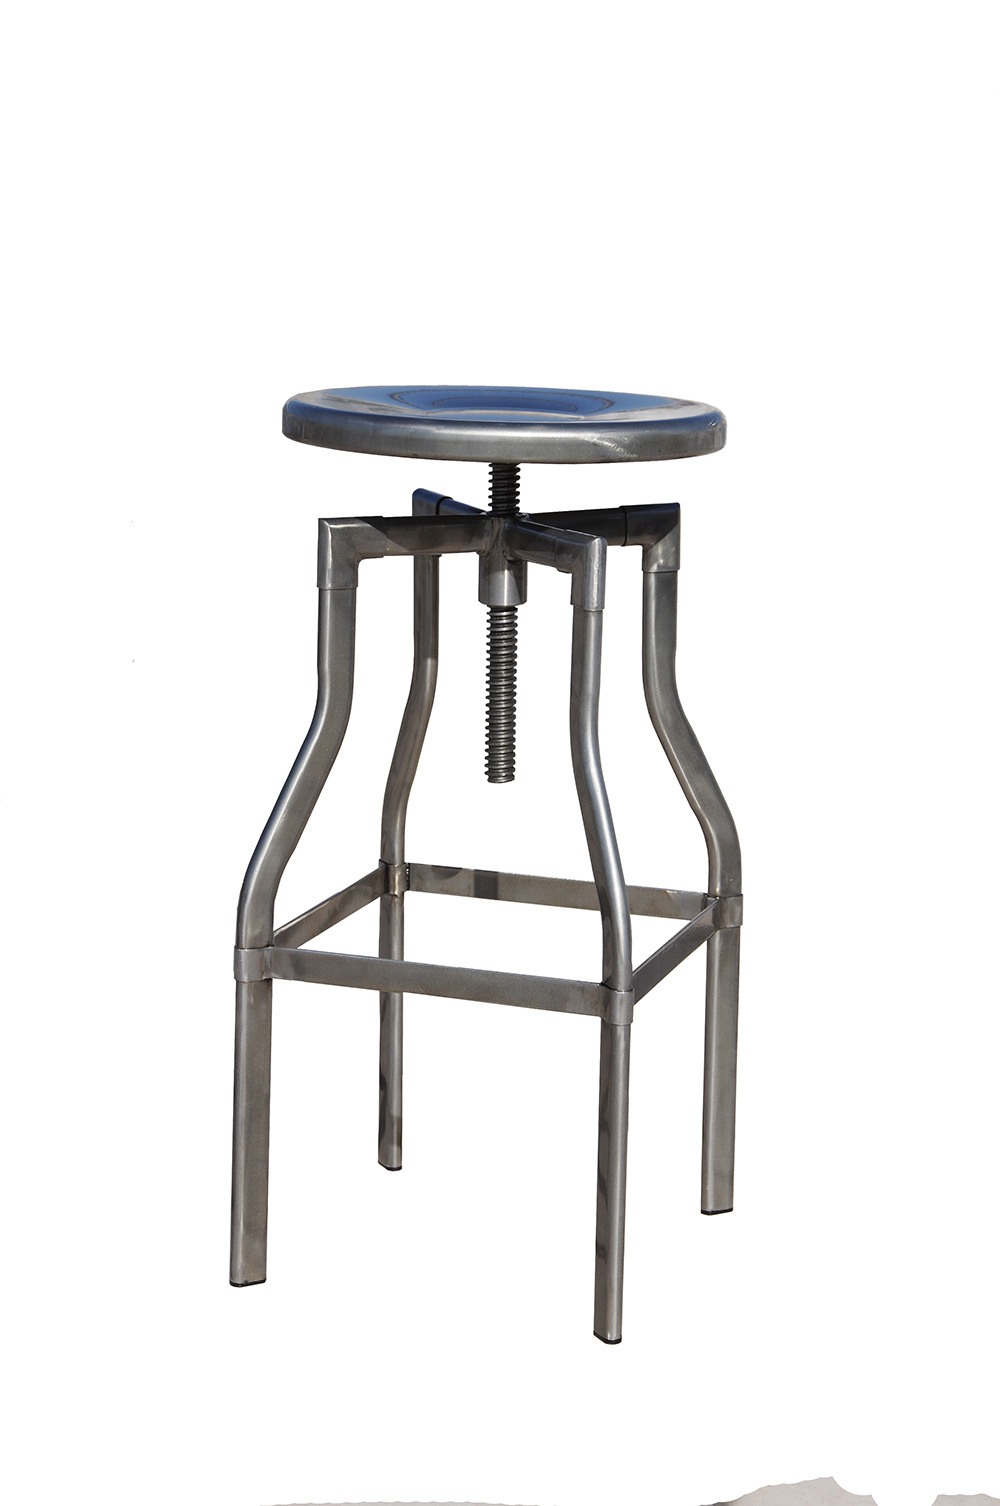 Admirable China Industrial Metal Restaurant Dining Furniture Steel Ncnpc Chair Design For Home Ncnpcorg